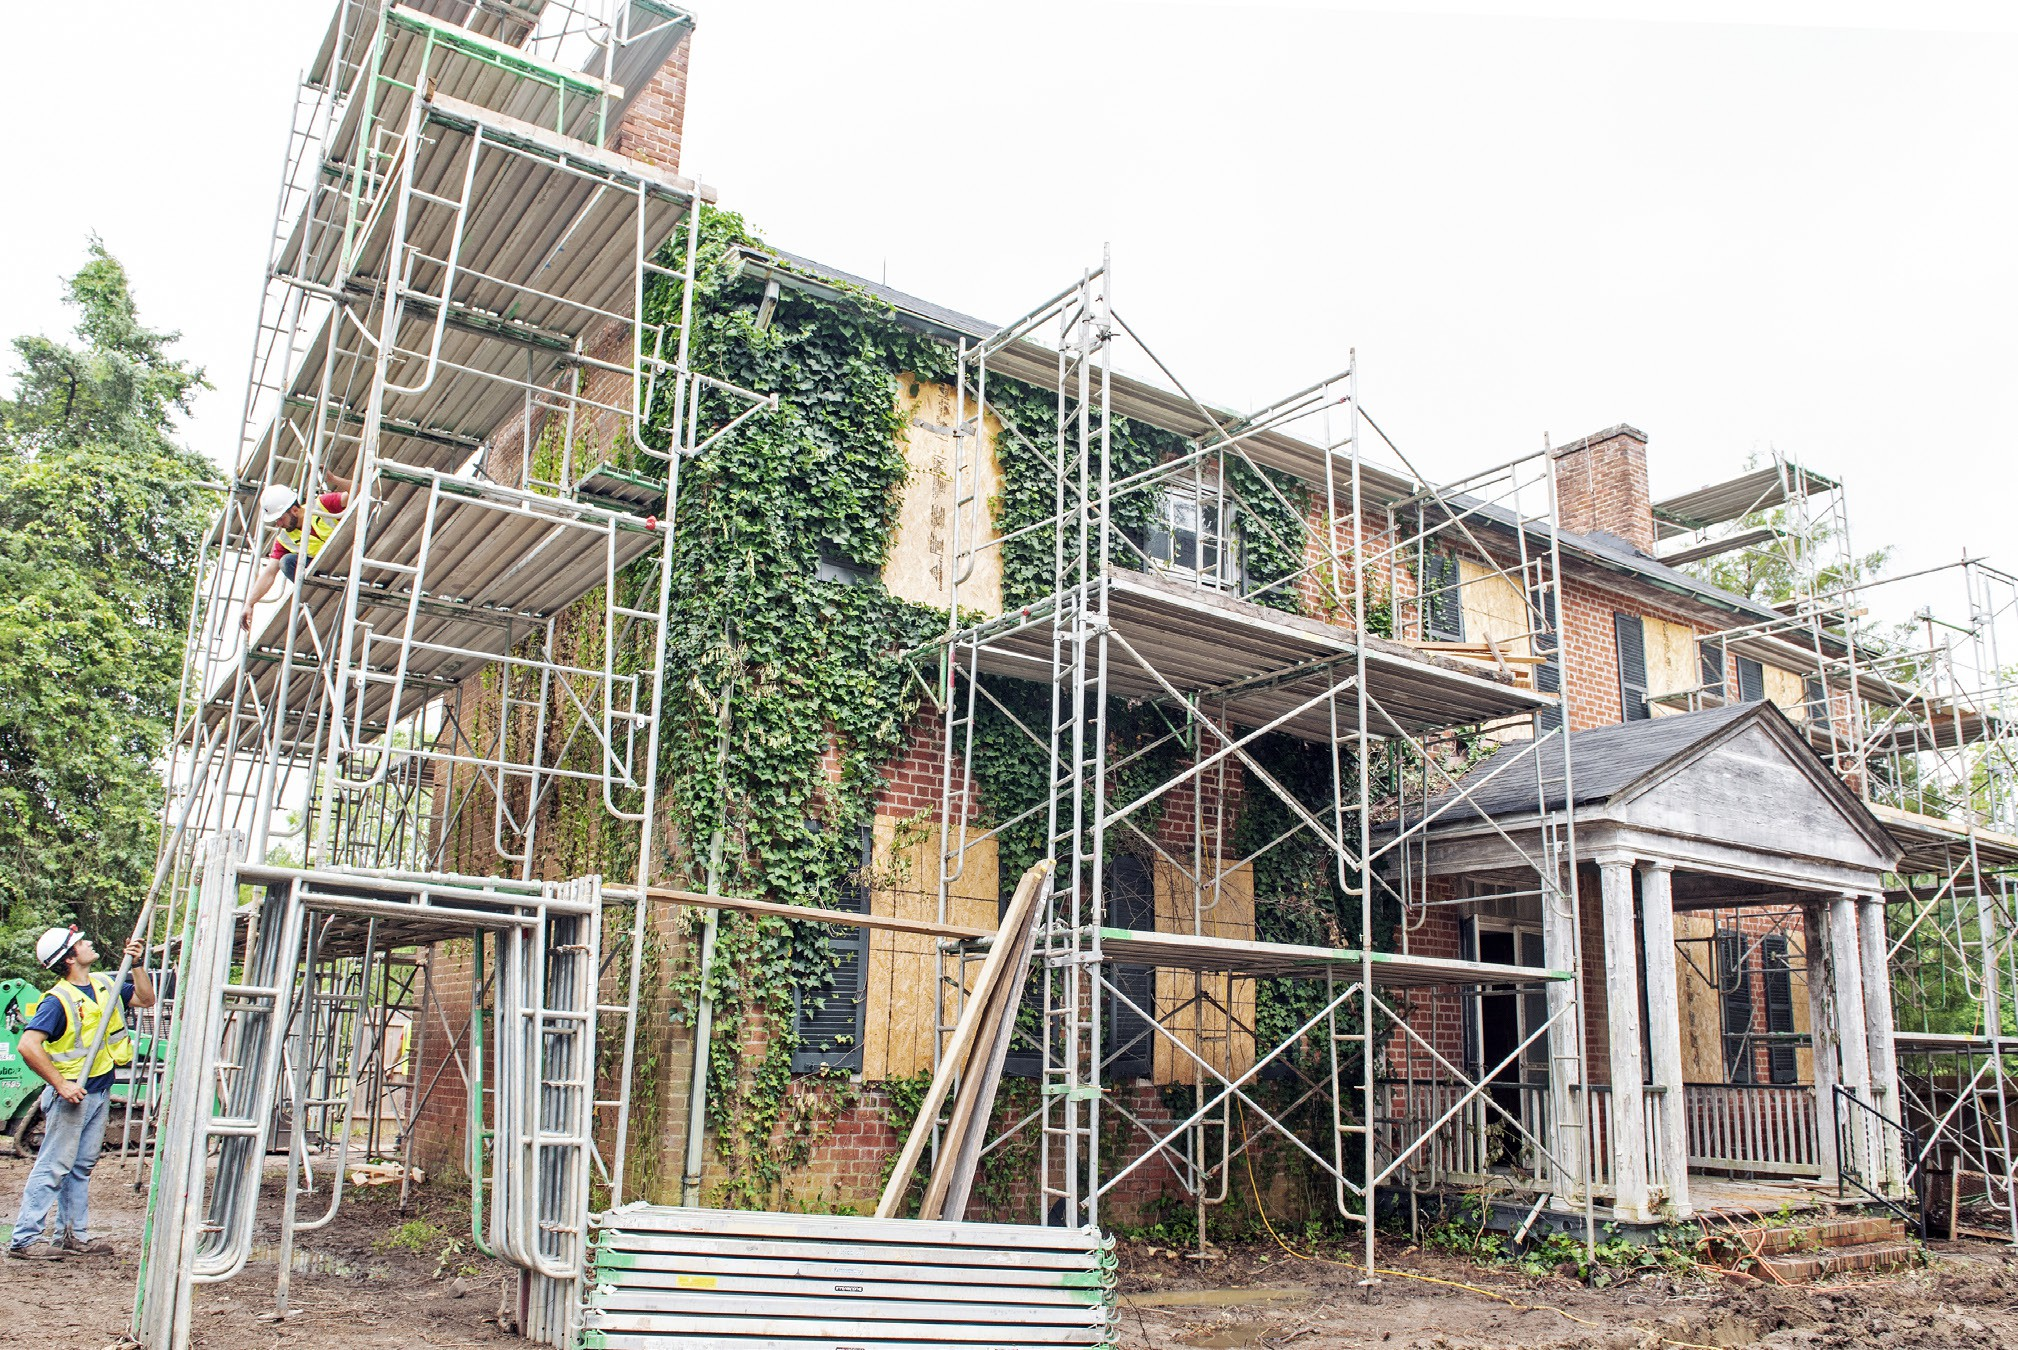 Workers have erected scaffolding on the exterior of a 184-year-old Midlothian house, formerly owned by local teacher Virginia Justis. The 2,900-square-foot structure will be dismantled piece by piece and reconstructed on another site. ASH DANIEL